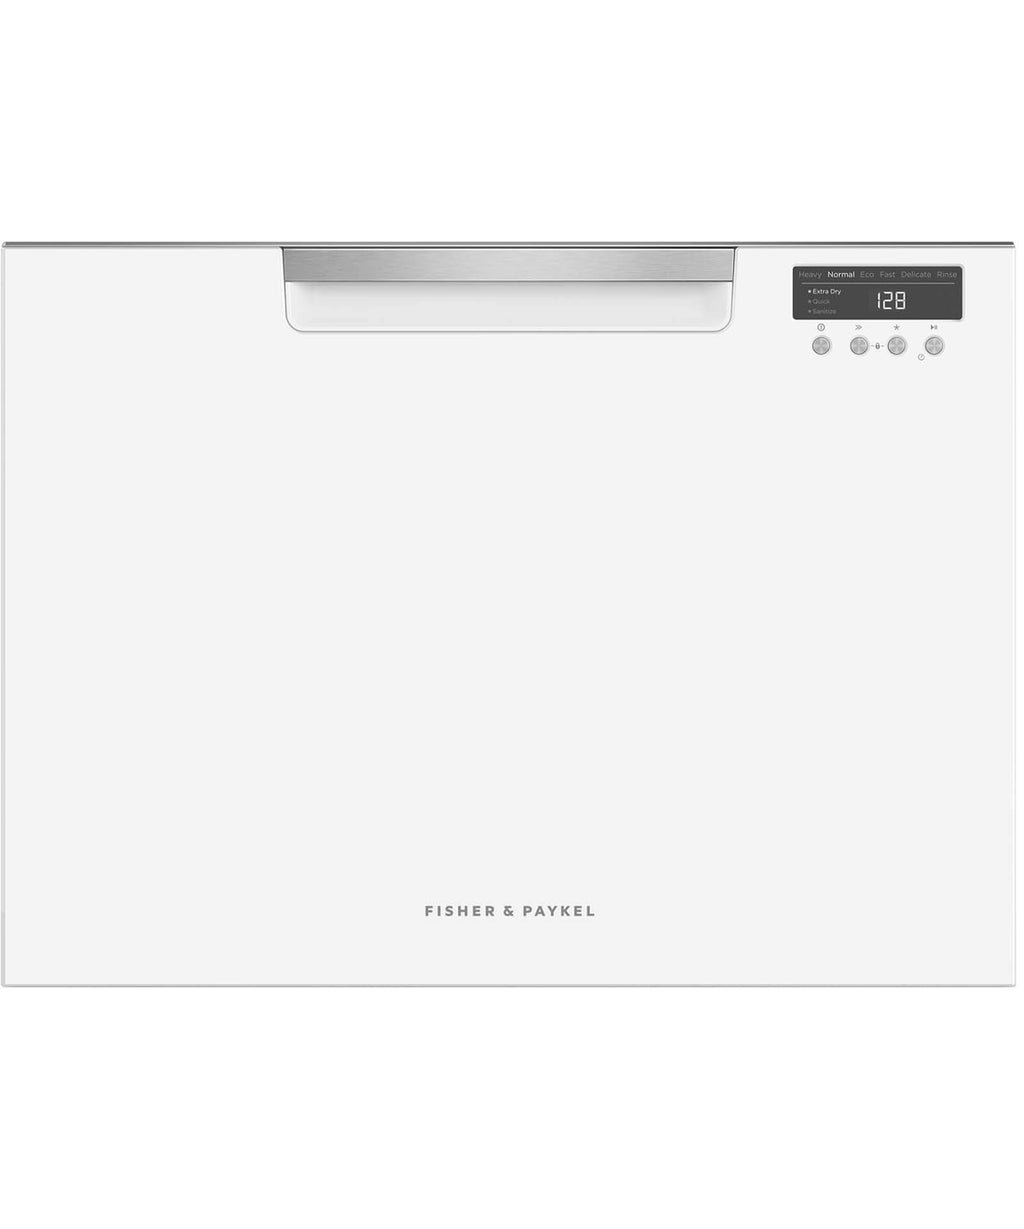 DMG SHOP - Fisher & Paykel Single DishDrawer Tall 7 Place